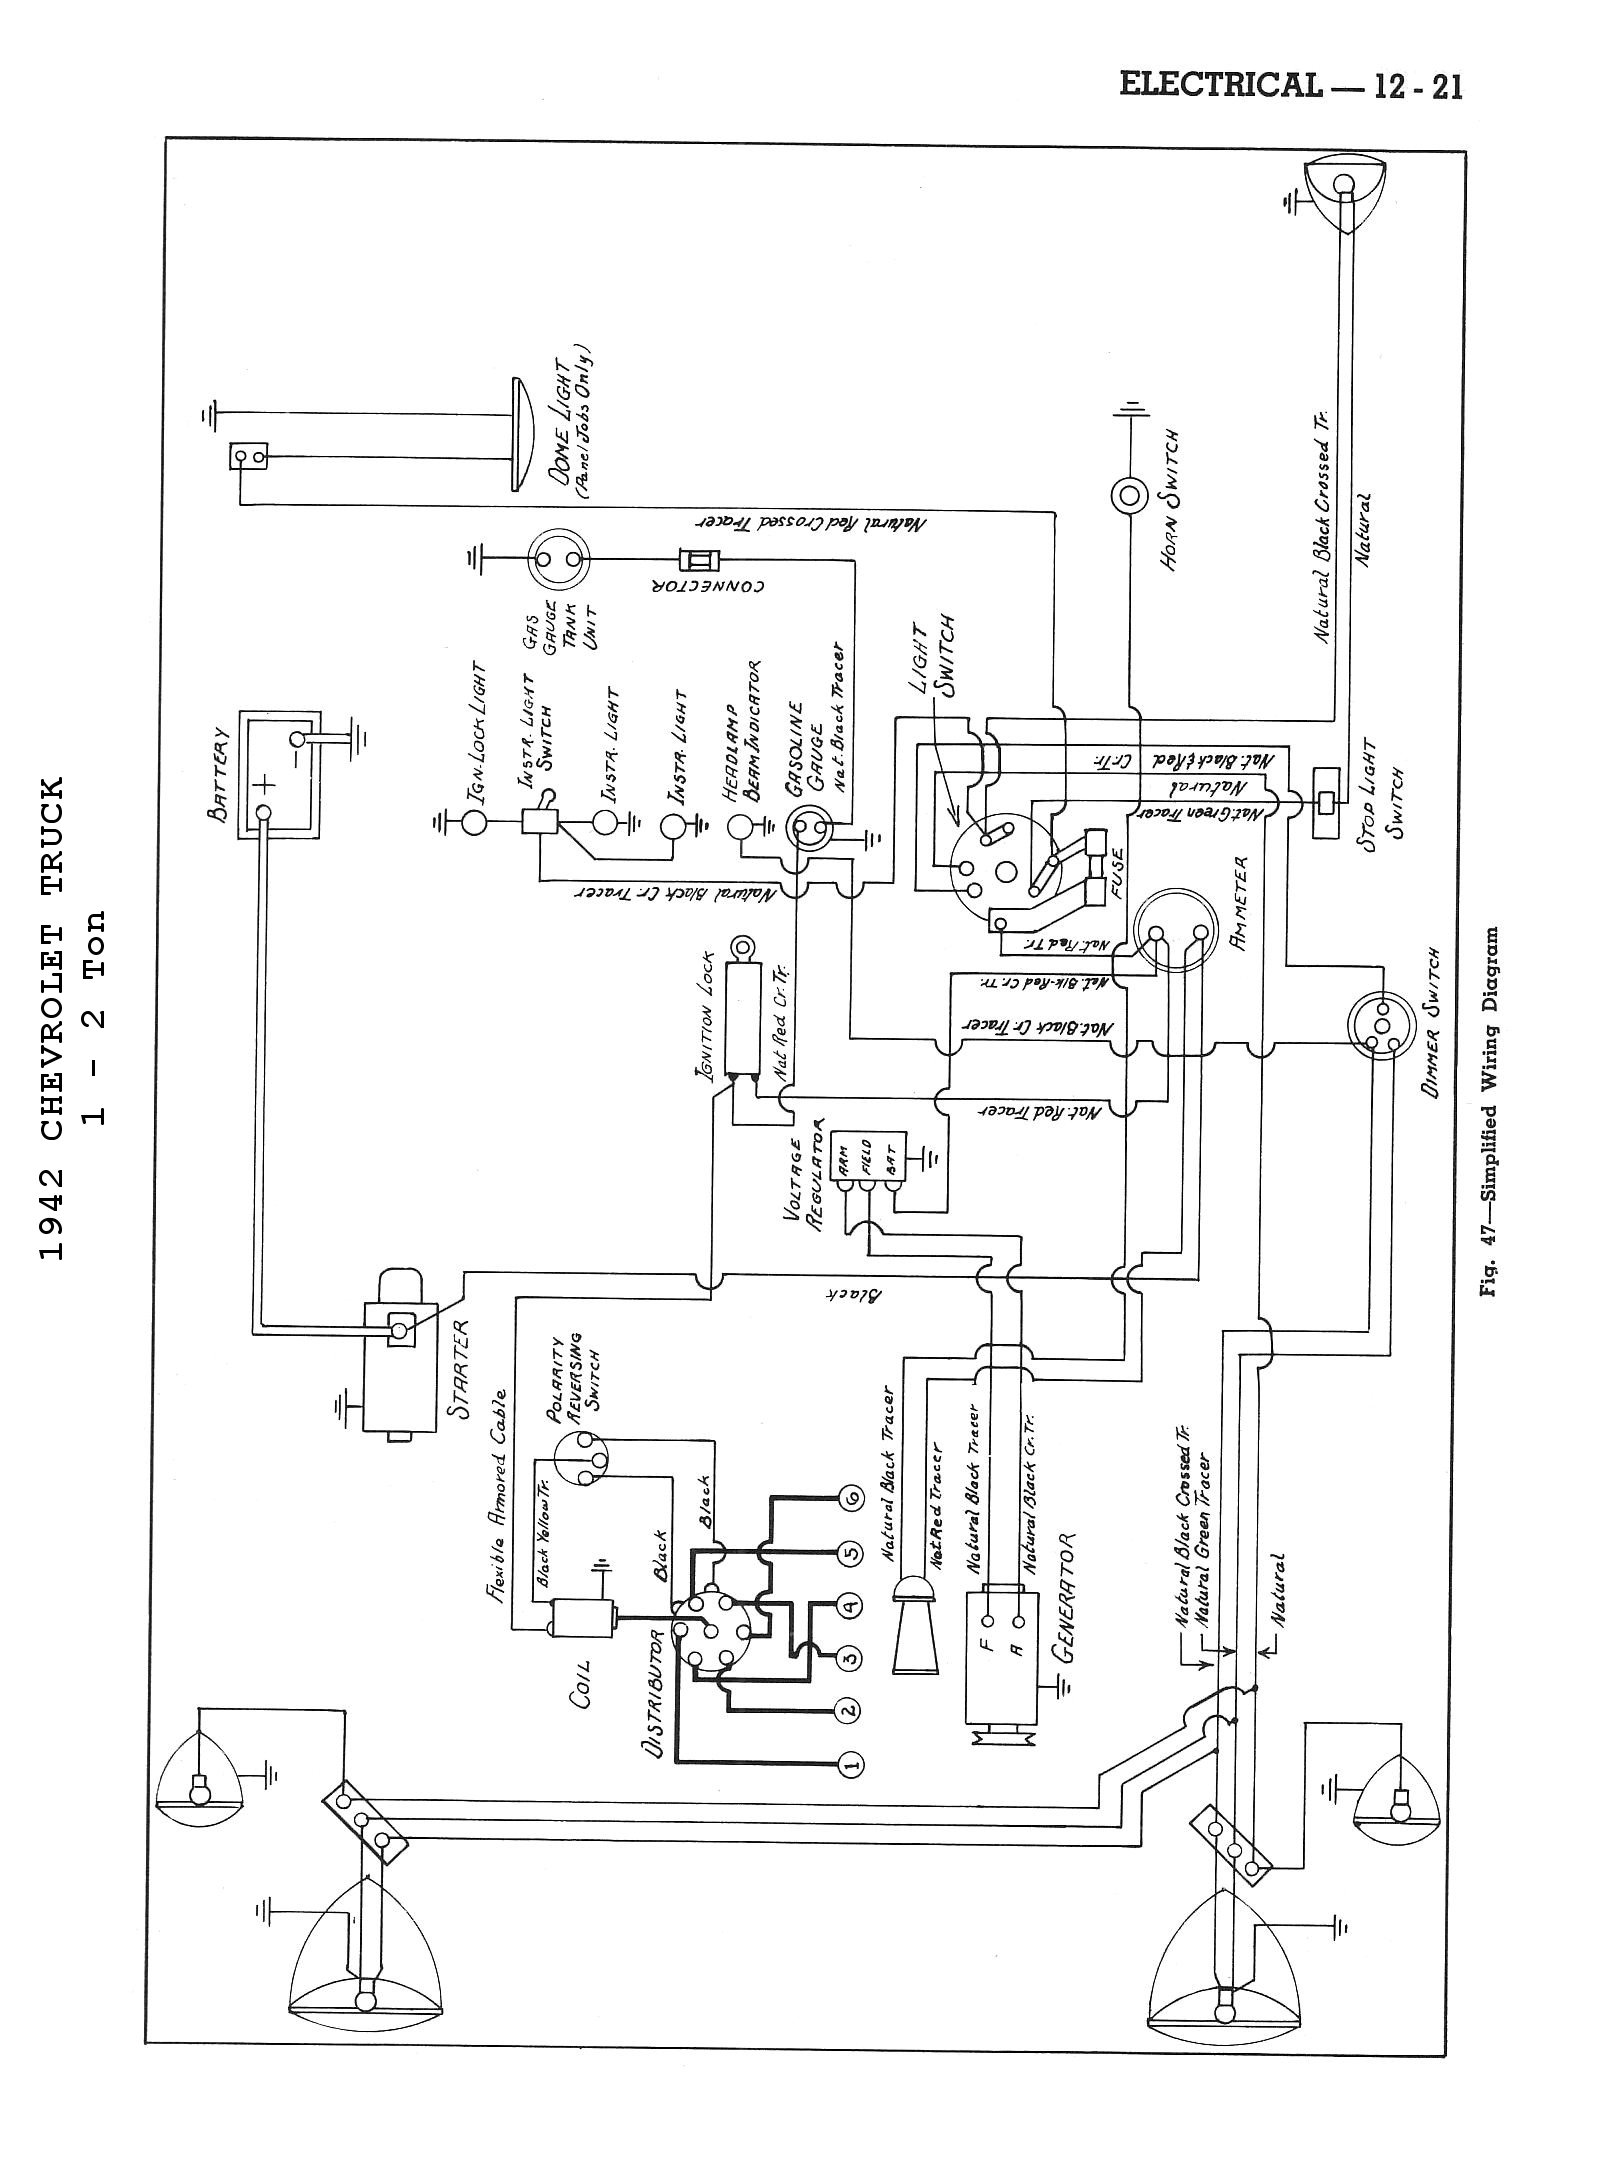 42cm4x2t1221 chevy wiring diagrams wiring diagram for cm truck bed at aneh.co